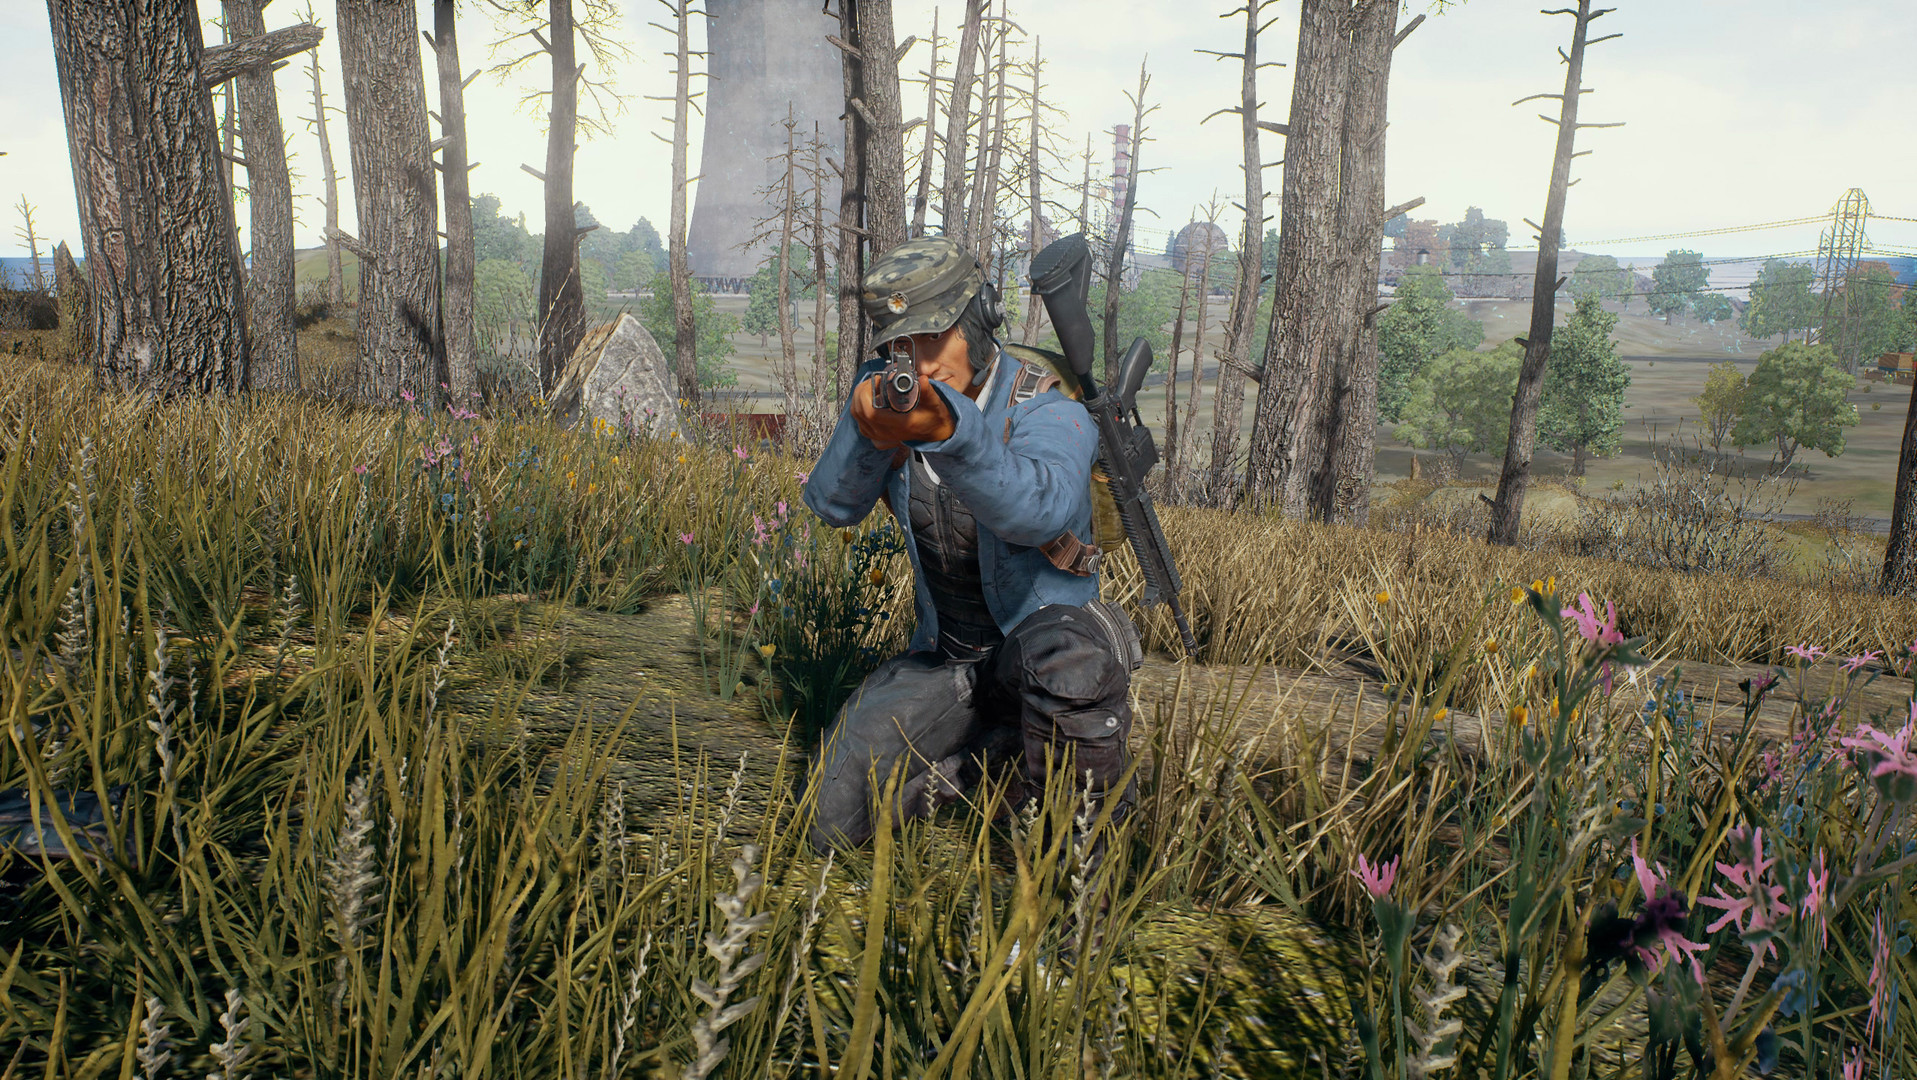 The best PUBG prices for Xbox One and Steam pre-Black Friday 2018